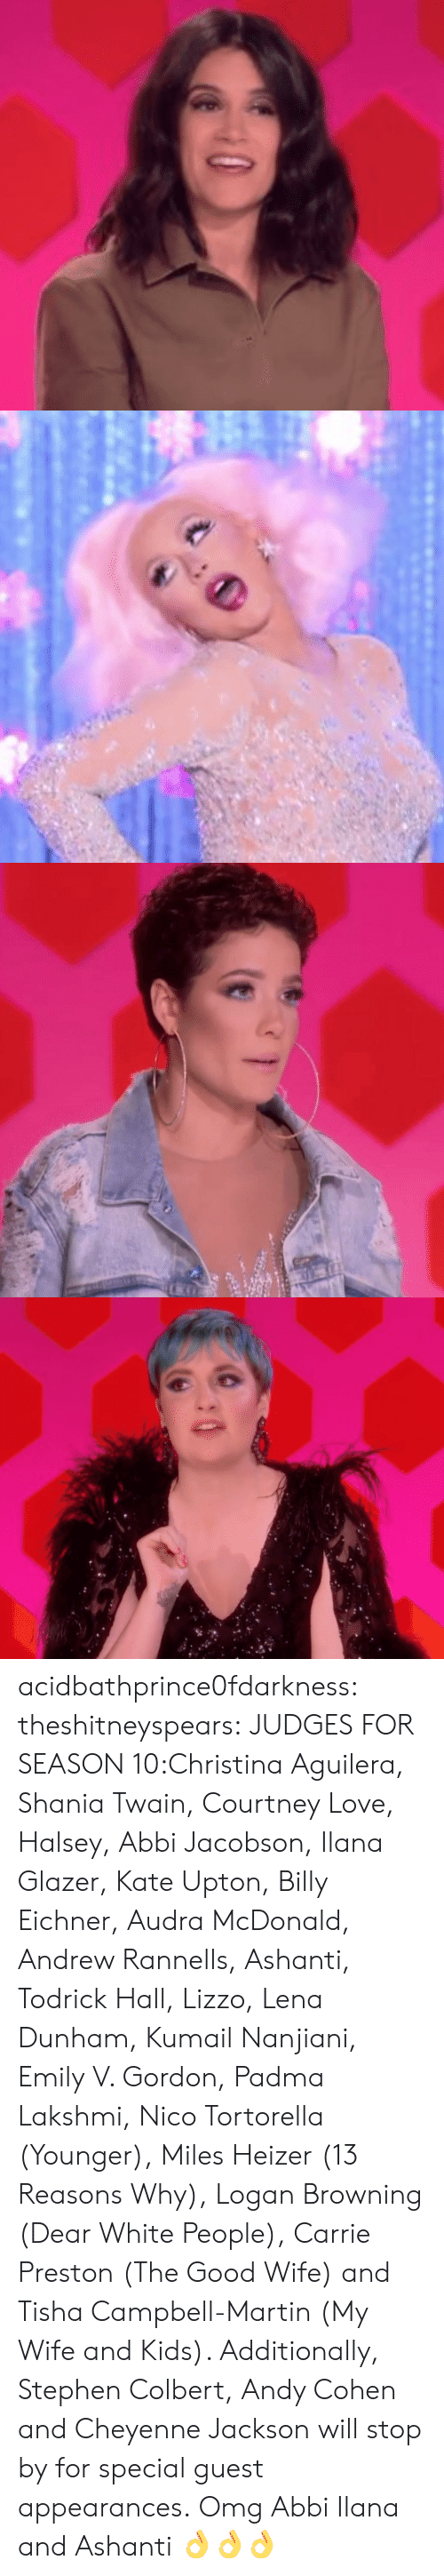 Ashanti: acidbathprince0fdarkness:  theshitneyspears:  JUDGES FOR SEASON 10:Christina Aguilera, Shania Twain, Courtney Love, Halsey, Abbi Jacobson, Ilana Glazer, Kate Upton, Billy Eichner, Audra McDonald, Andrew Rannells, Ashanti, Todrick Hall, Lizzo, Lena Dunham, Kumail Nanjiani, Emily V. Gordon, Padma Lakshmi, Nico Tortorella (Younger), Miles Heizer (13 Reasons Why), Logan Browning (Dear White People), Carrie Preston (The Good Wife) and Tisha Campbell-Martin (My Wife and Kids). Additionally, Stephen Colbert, Andy Cohen and Cheyenne Jackson will stop by for special guest appearances.  Omg Abbi  Ilana and Ashanti 👌👌👌